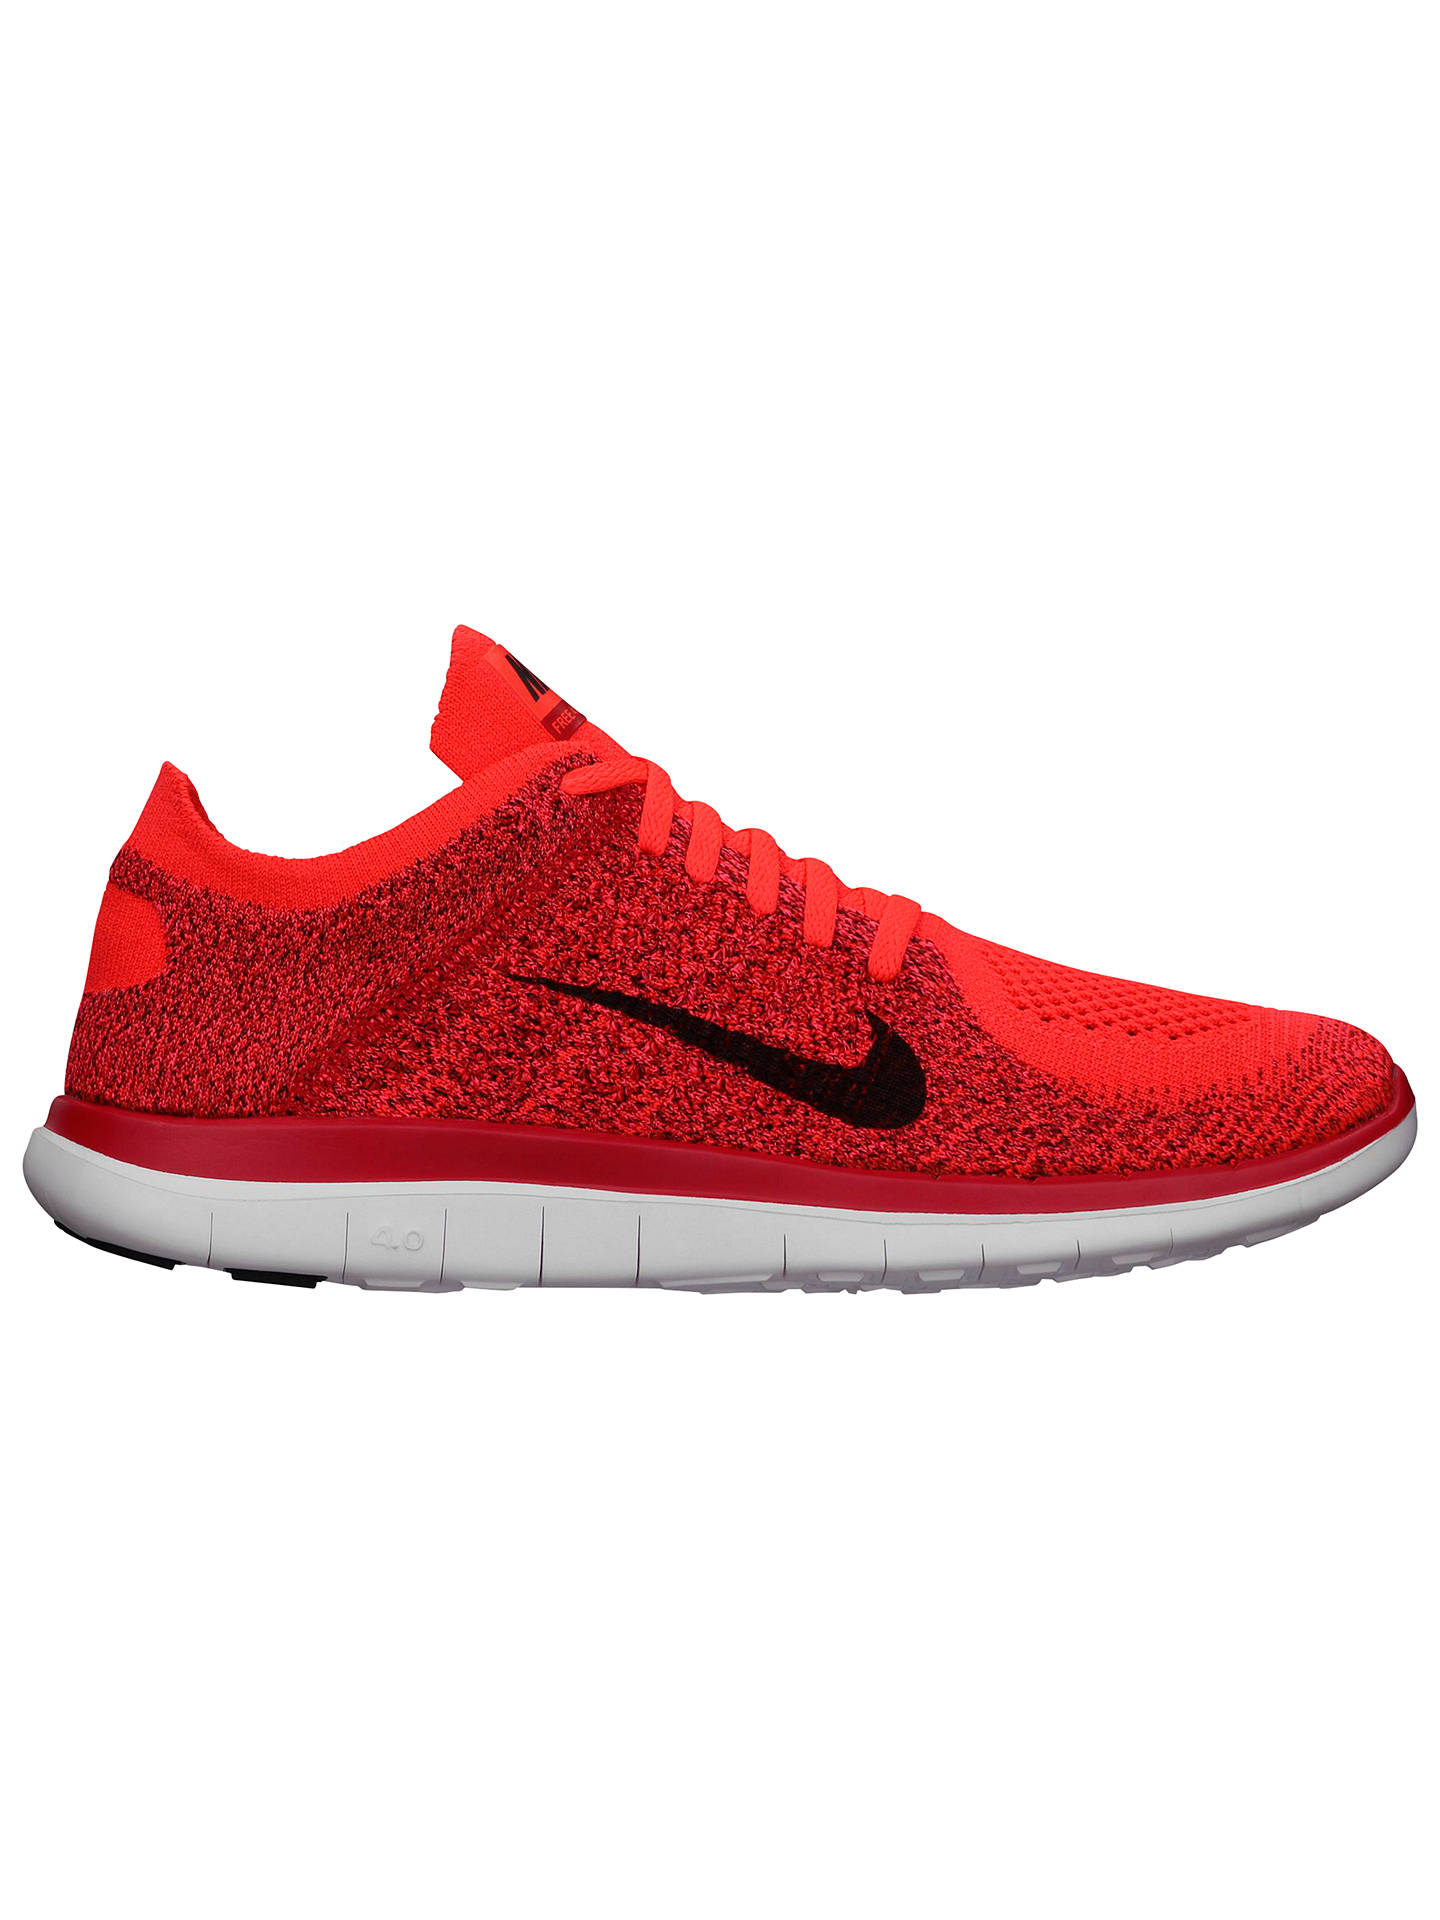 more photos f79ea 7e397 Buy Nike Free 4.0 Flyknit Men s Running Shoes, Bright Crimson University  Red, 7 ...